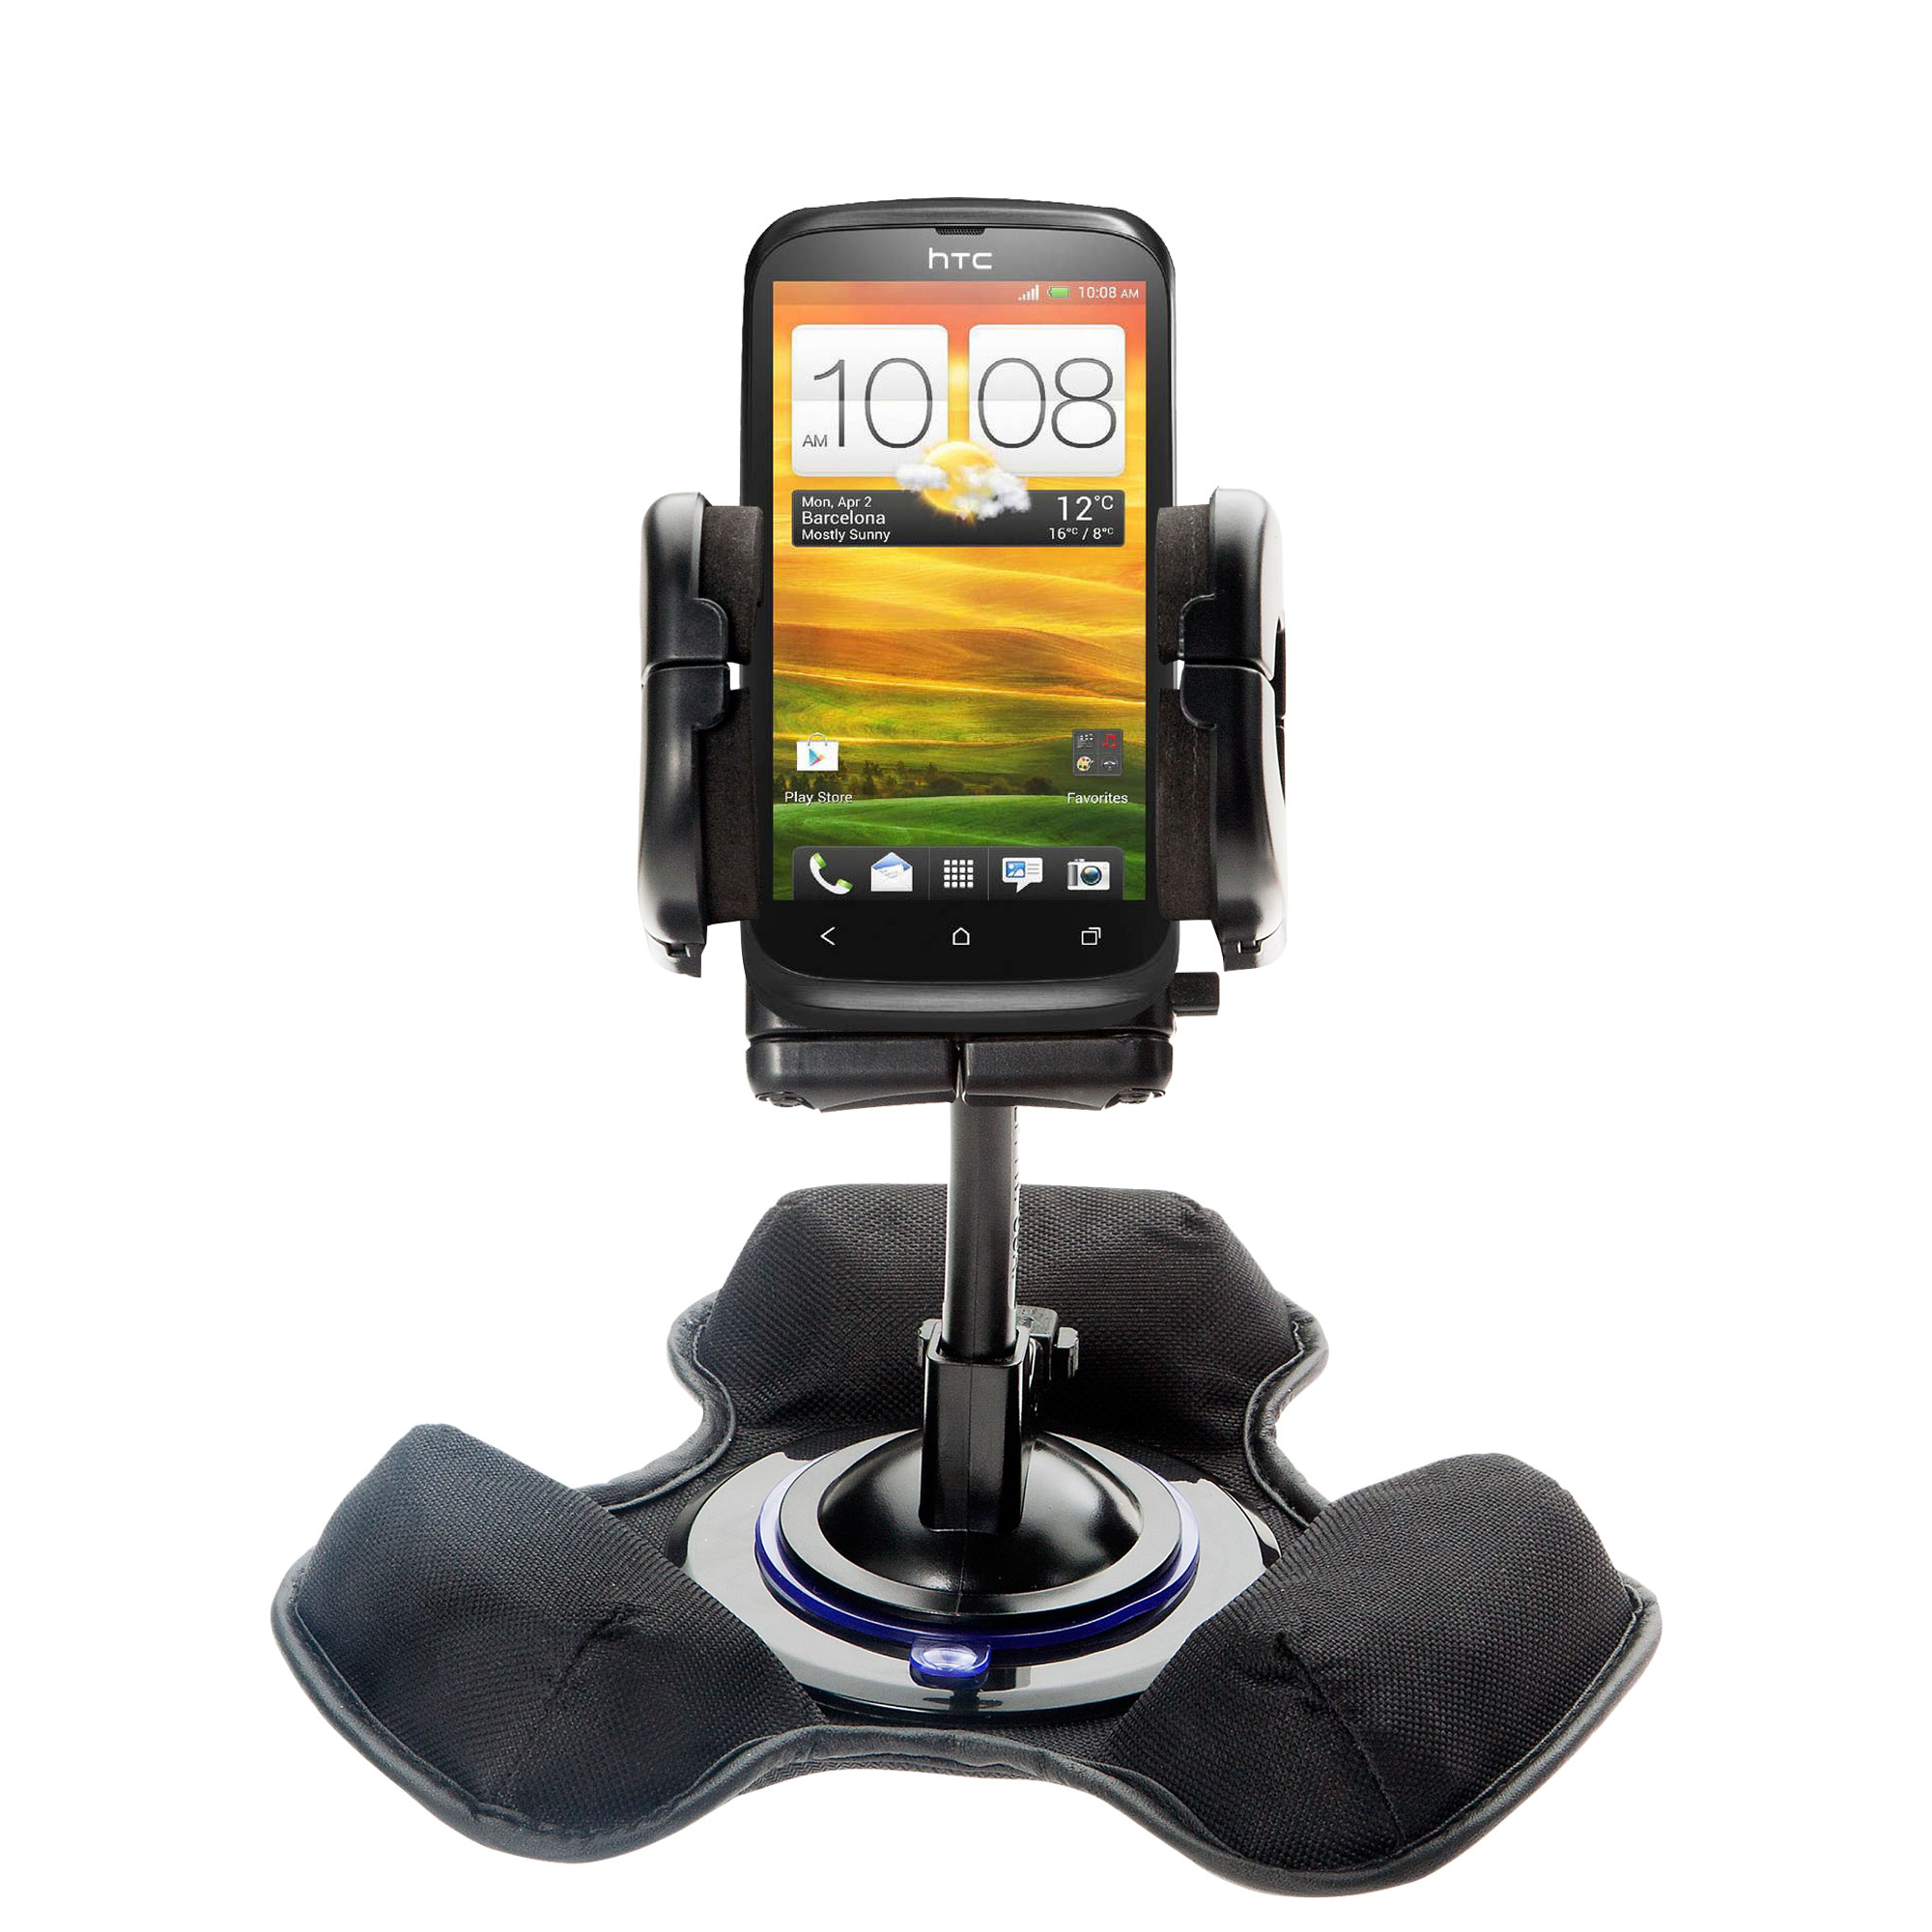 Dash and Windshield Holder compatible with the HTC Desire V